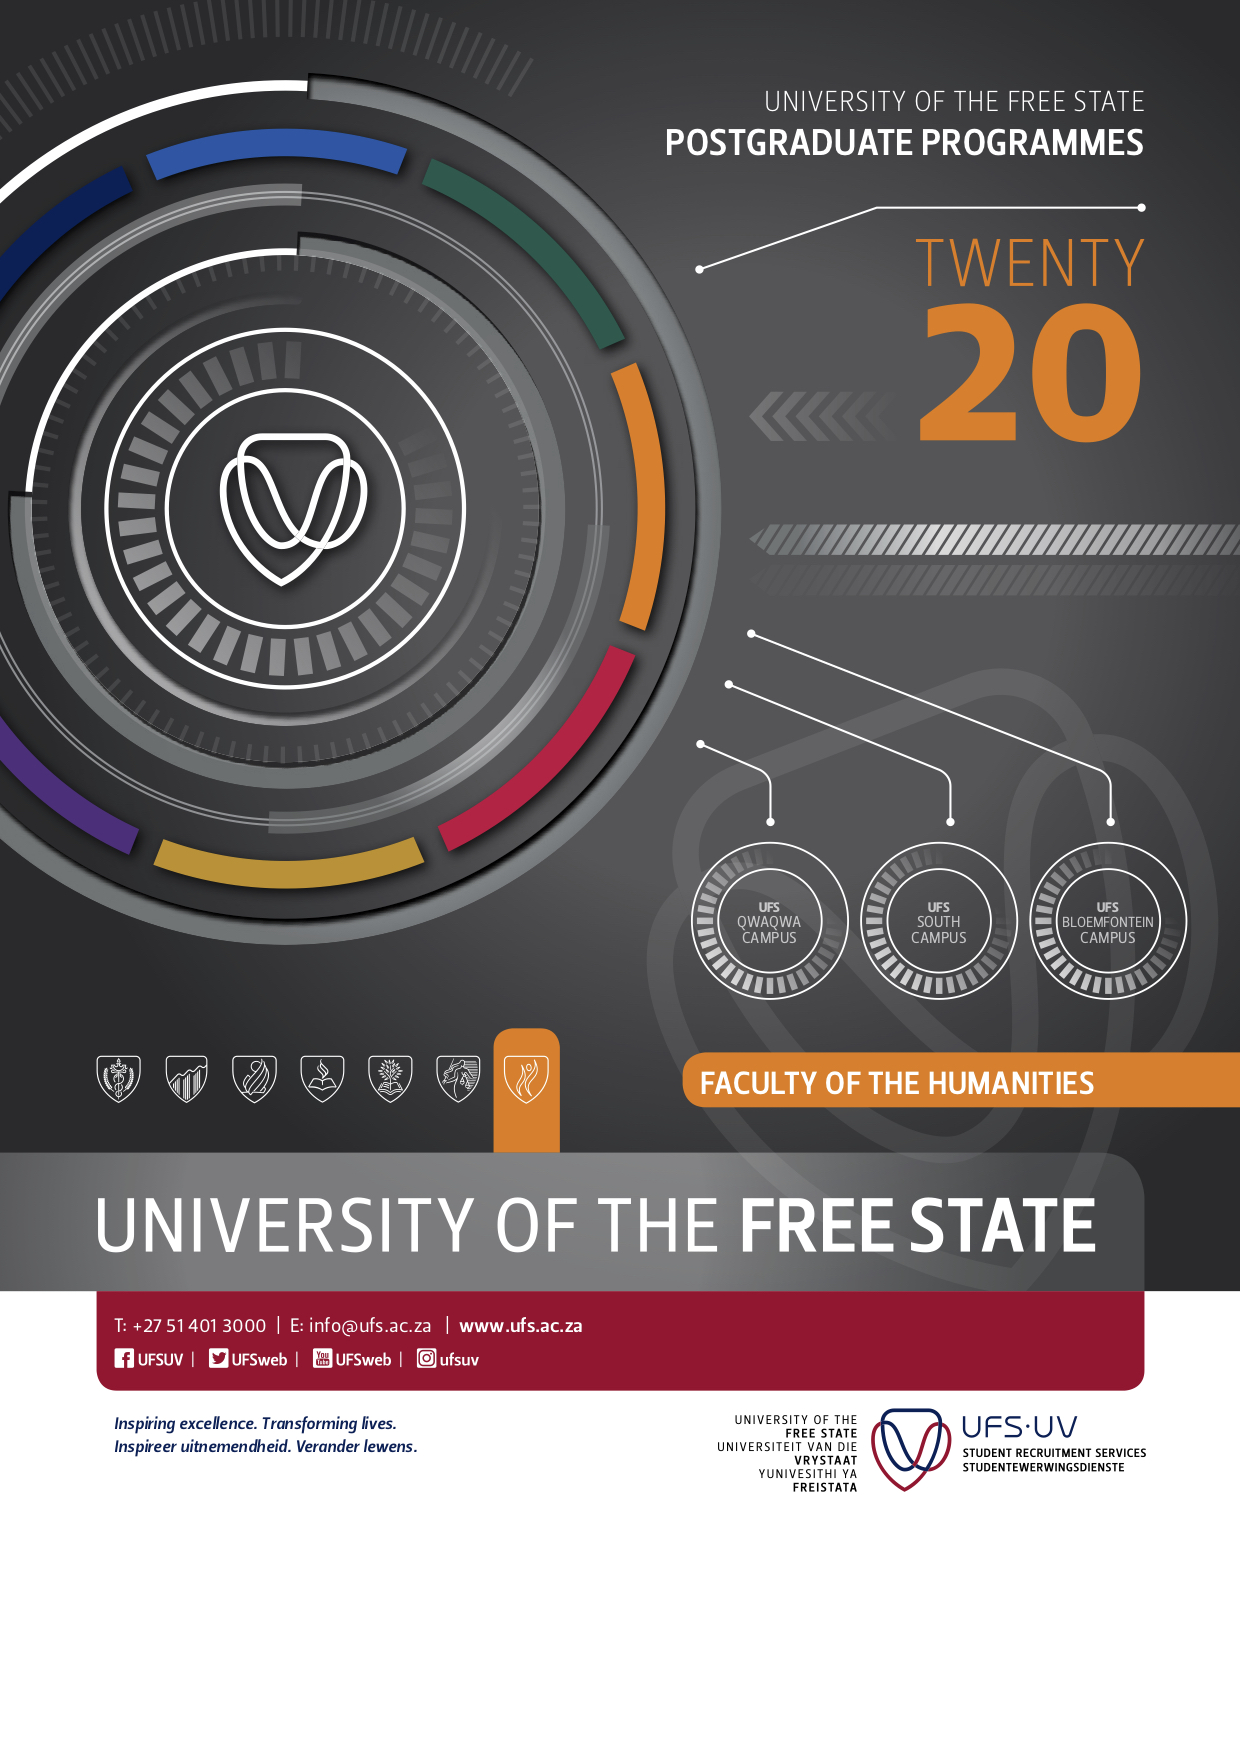 University of the Free State | Brand Public